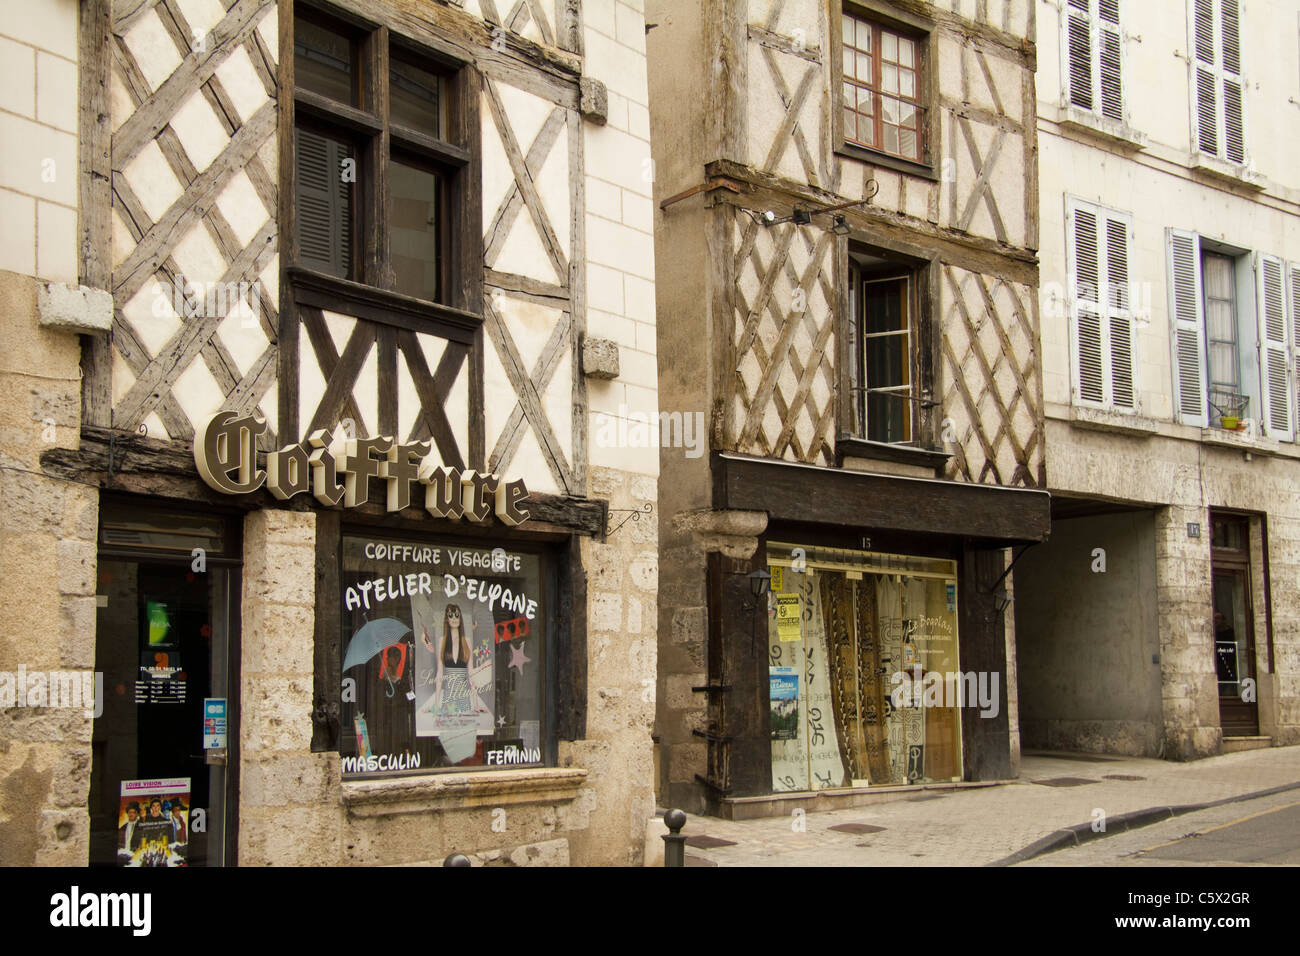 Coiffeur Blois Shops In The Old Town Blois Loire Valley France Stock Photo